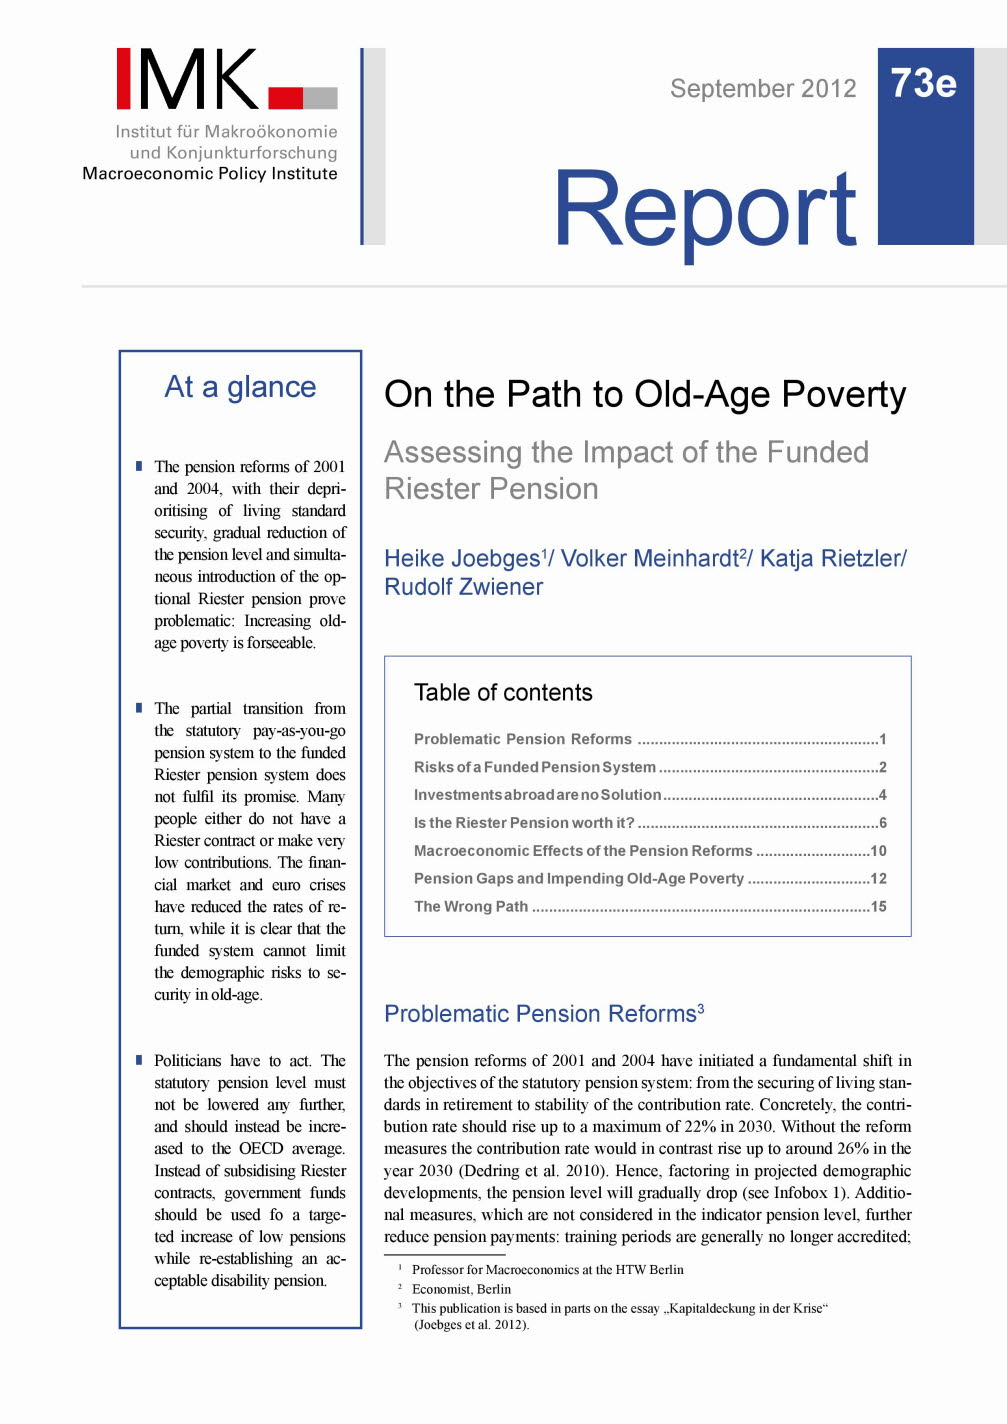 On the Path to Old-Age Poverty